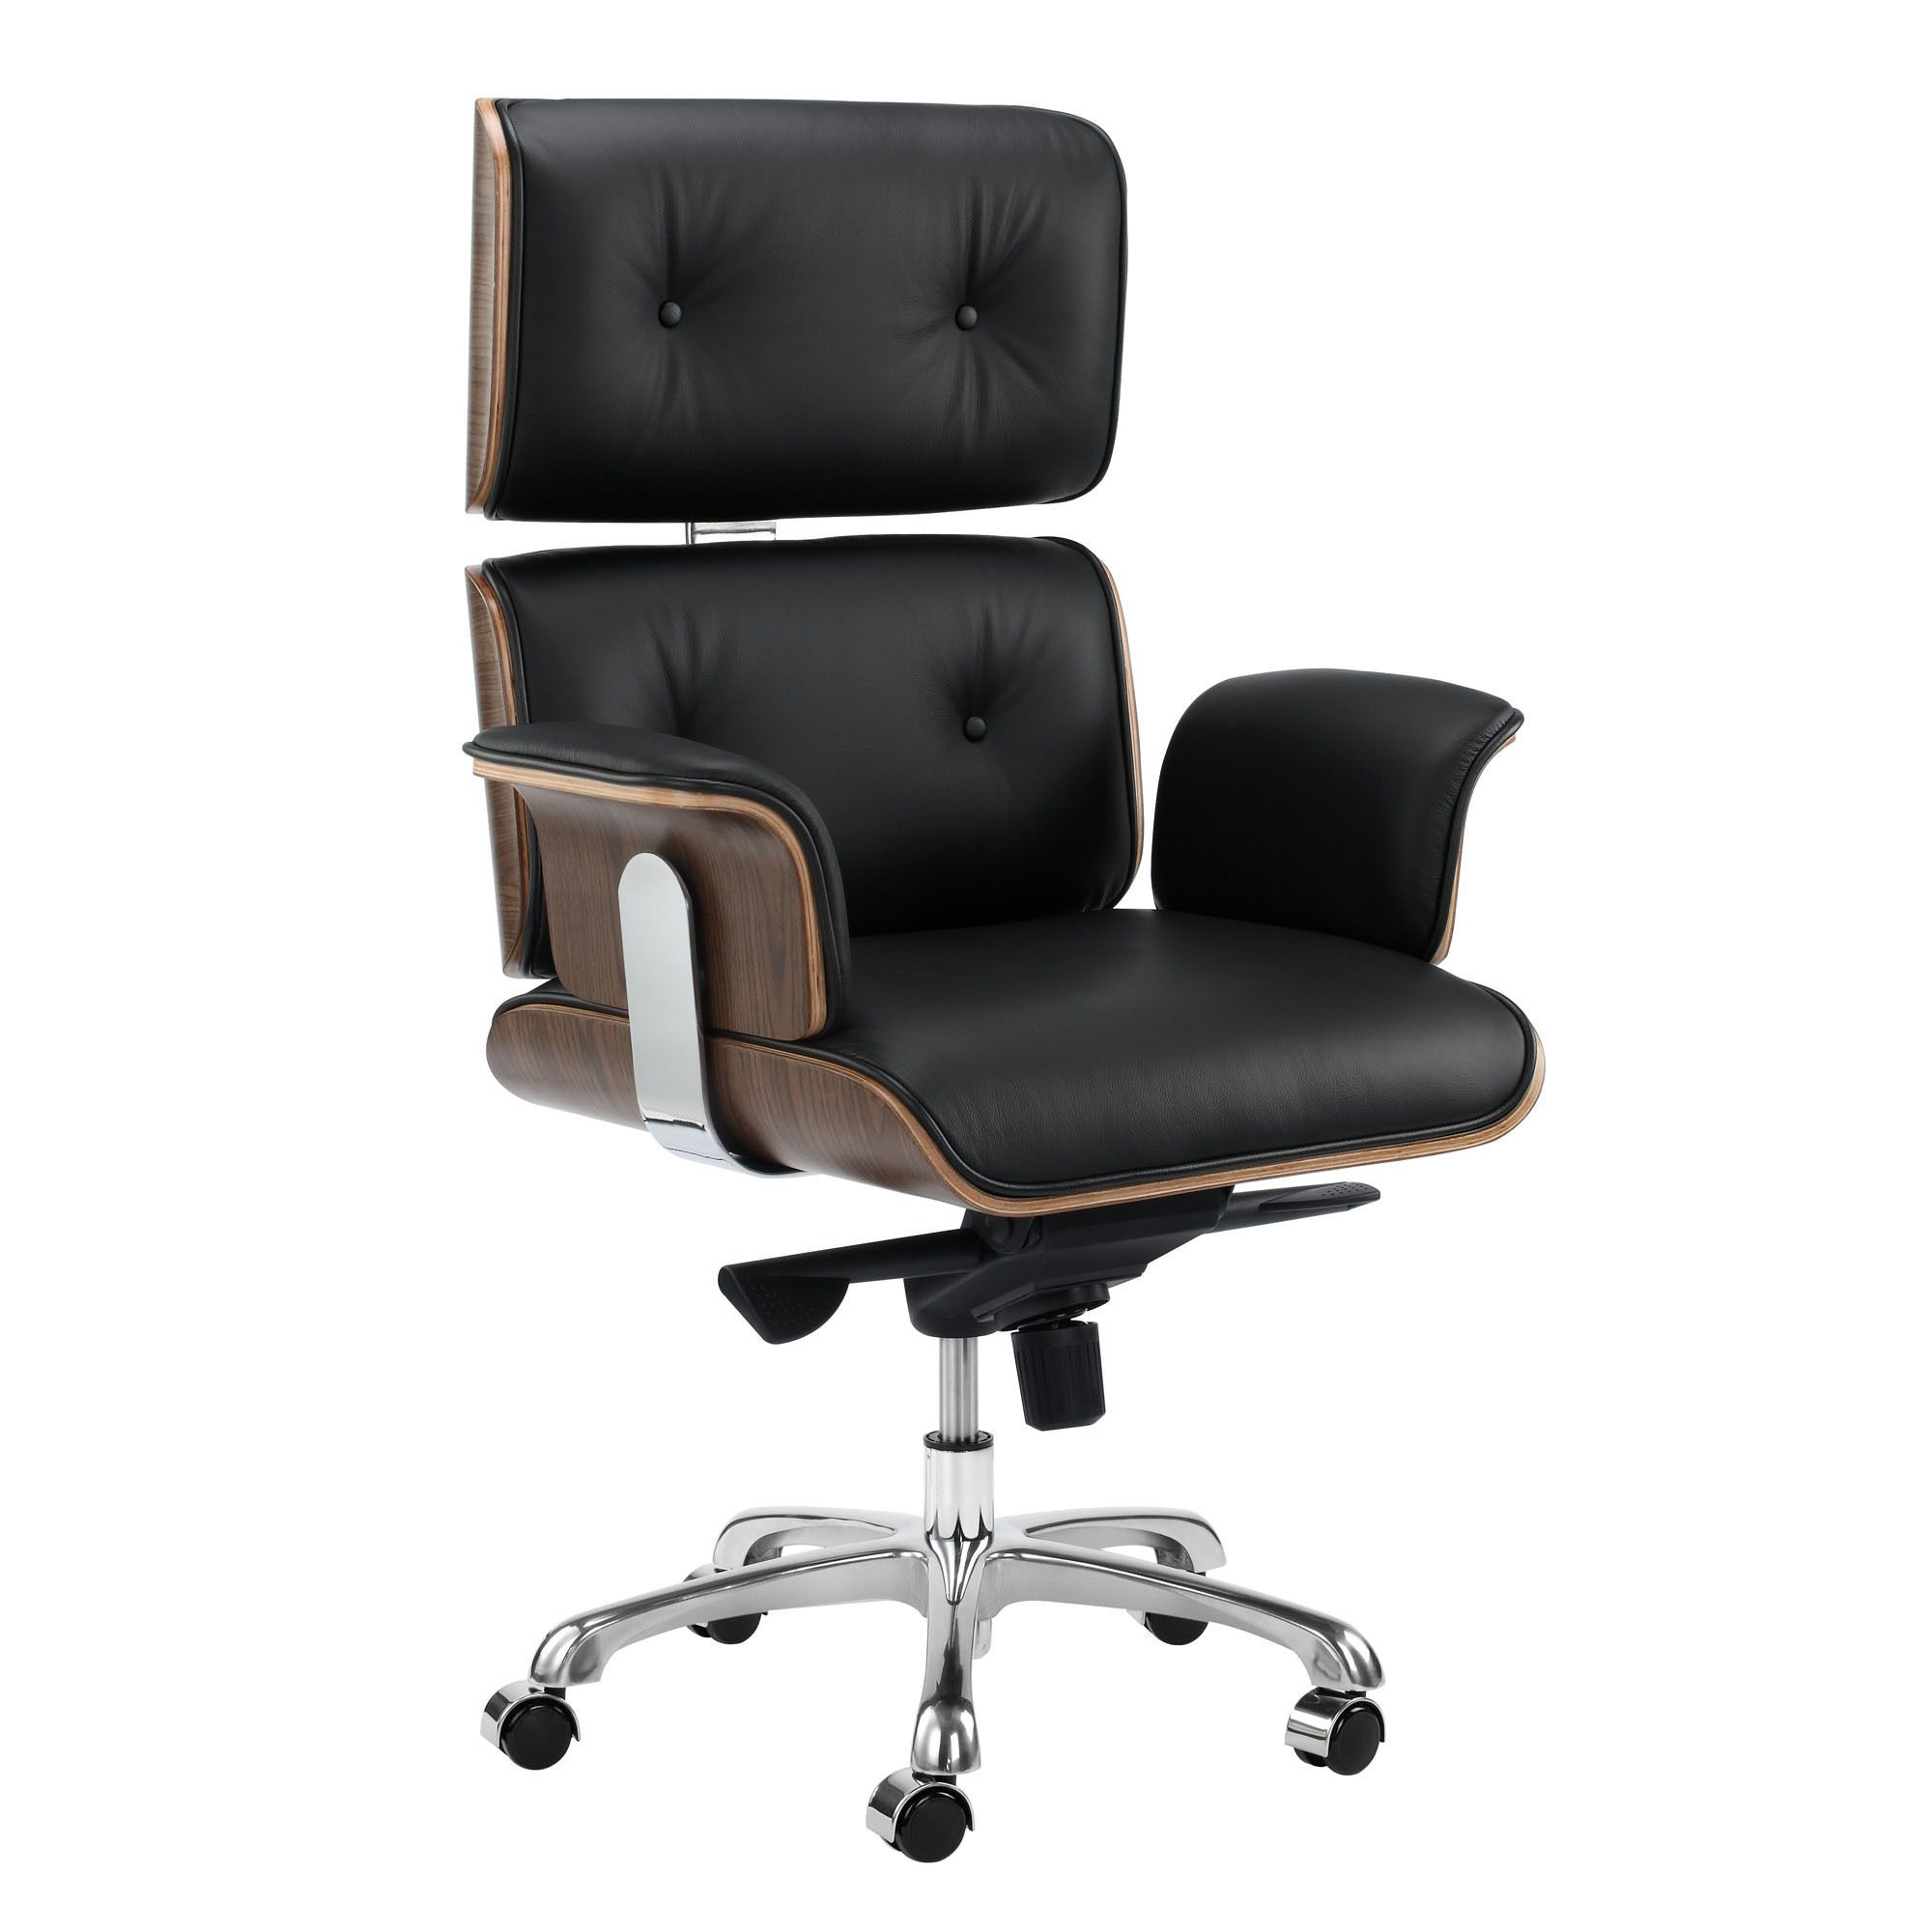 leather accent chair Eames Premium Leather Replica